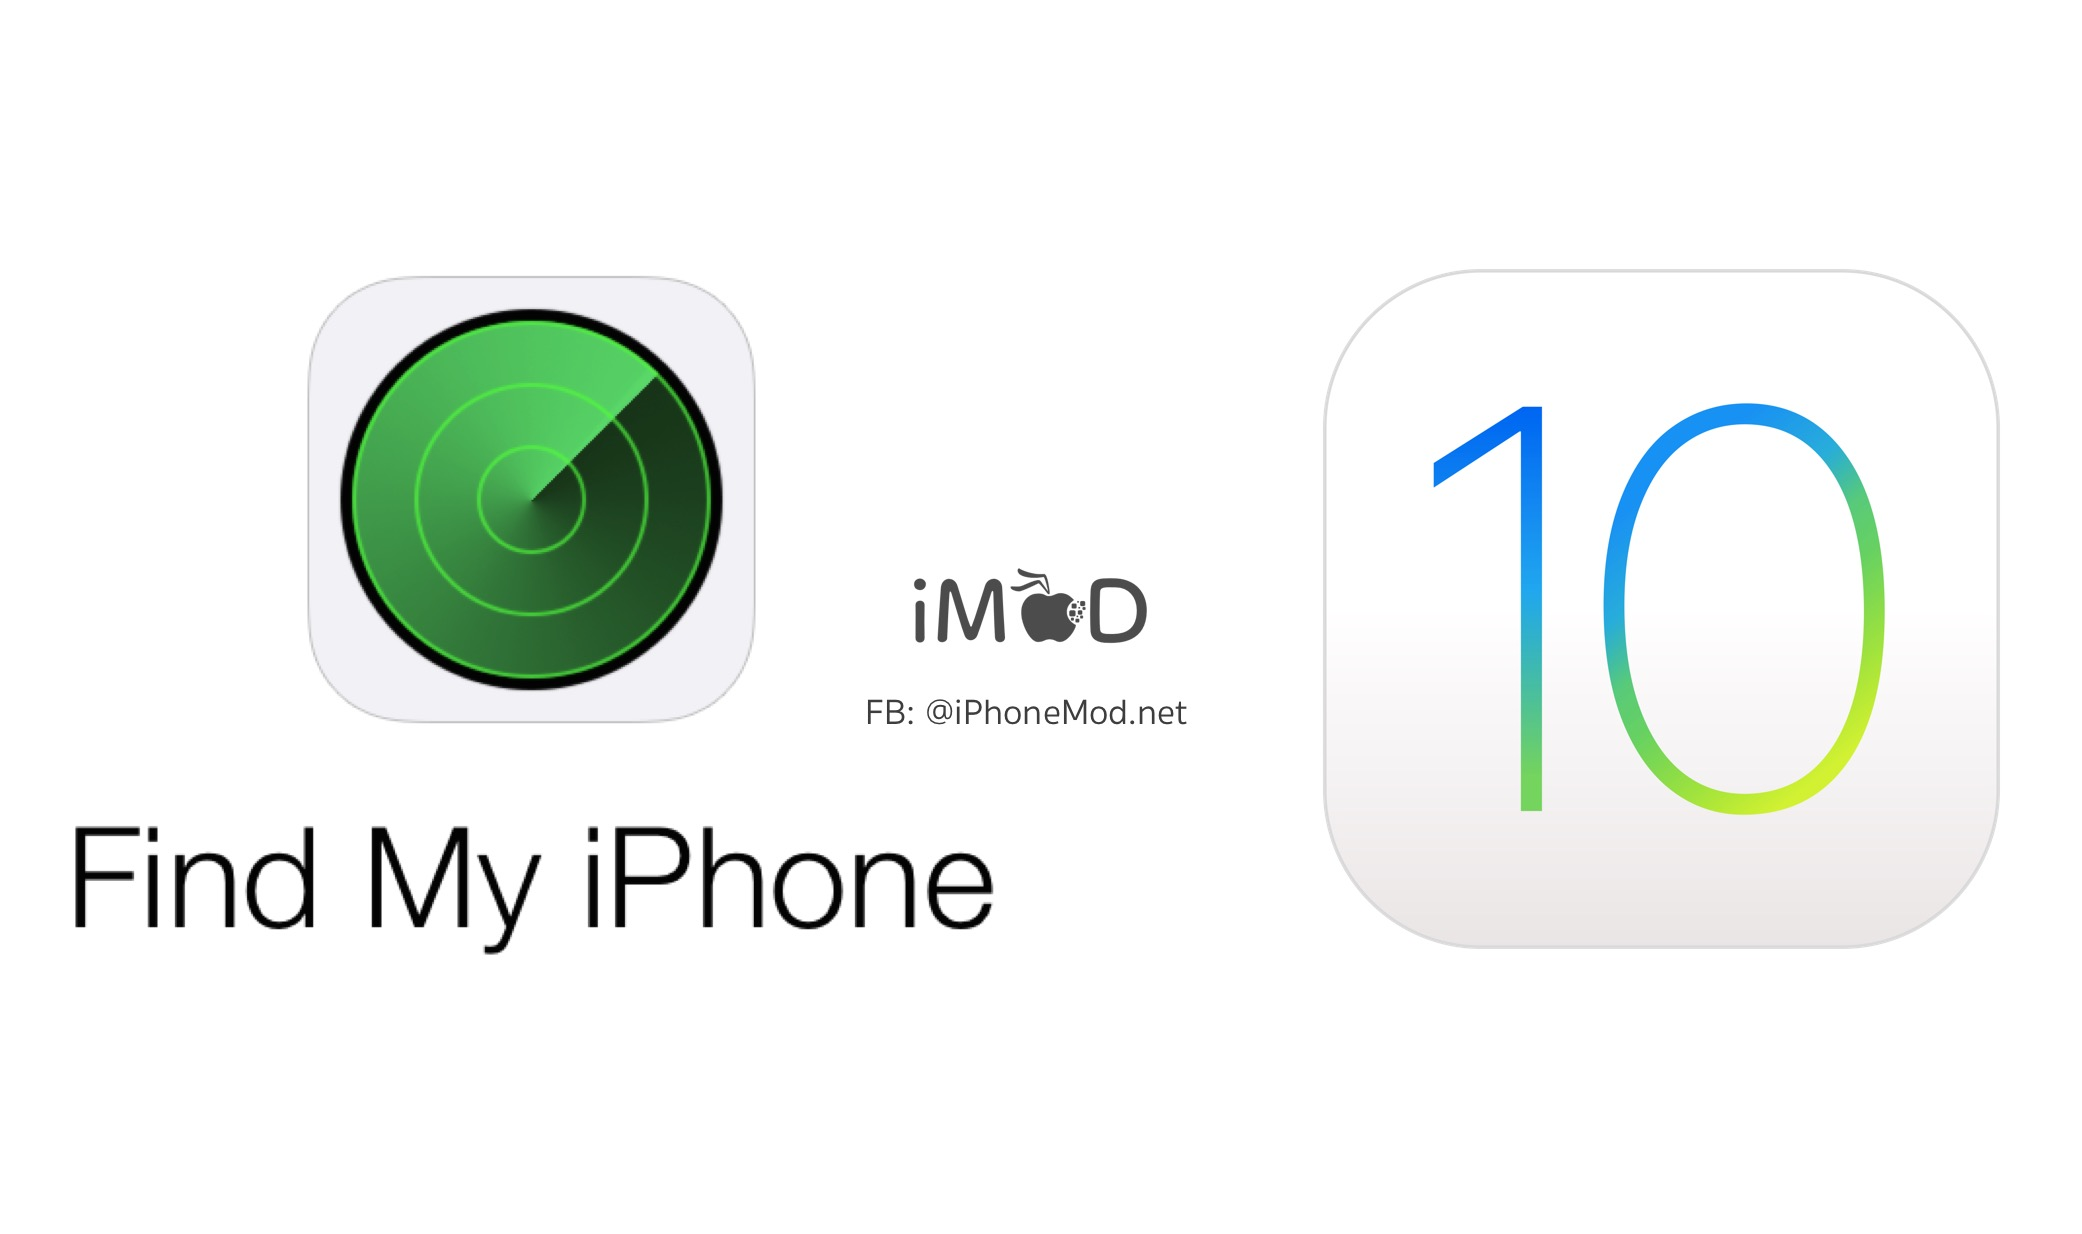 where to find find my iphone พบบ ค ios 10 เม อ reset all setting พบ find my iphone จะ 6251